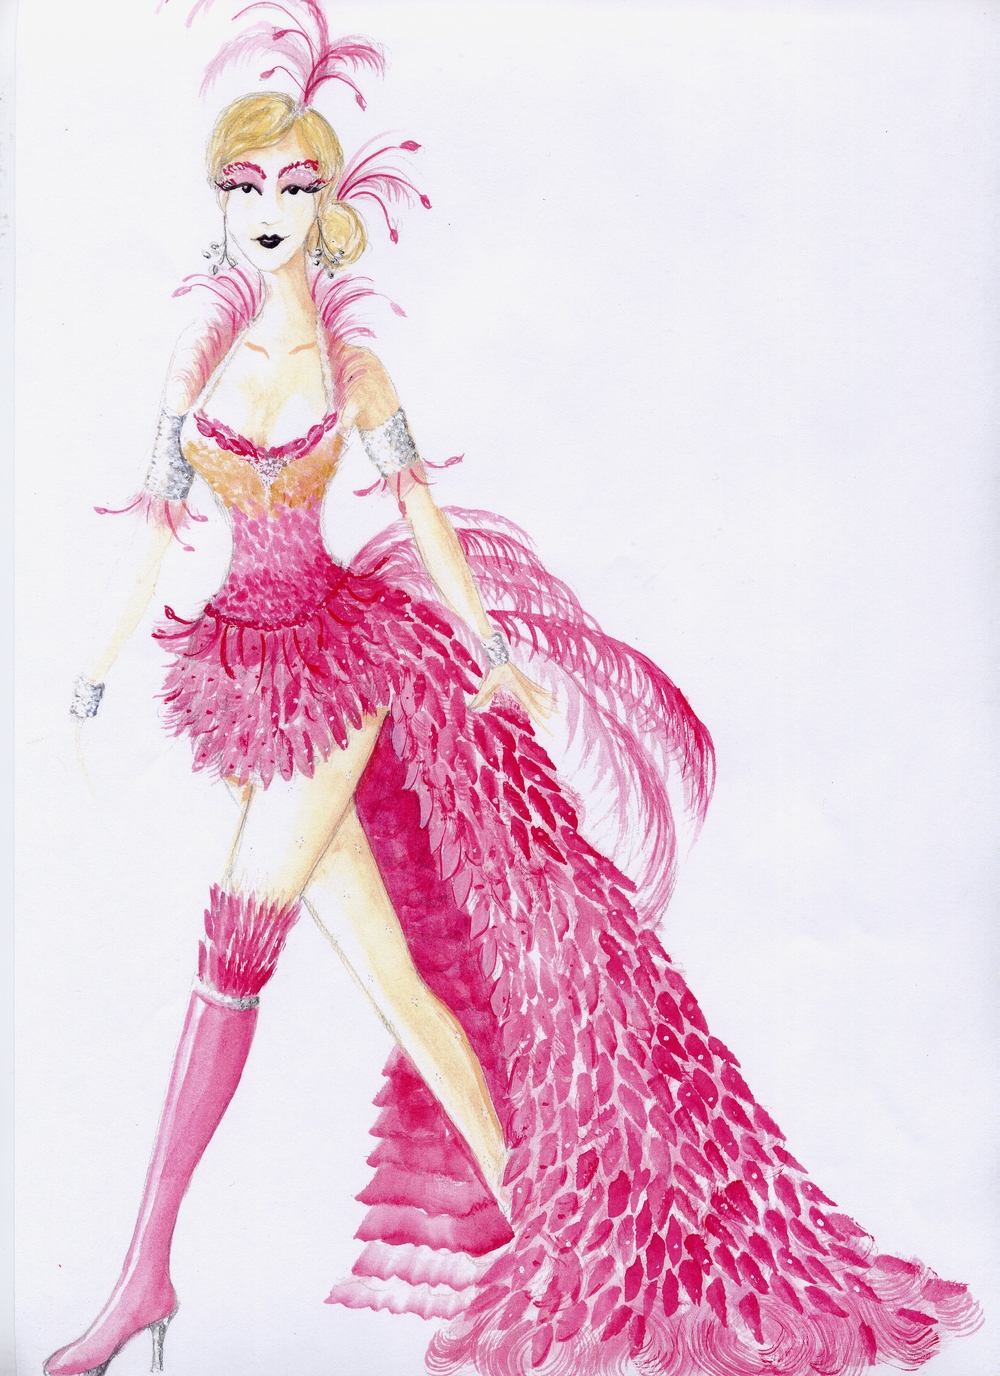 Flamingo costume rendering